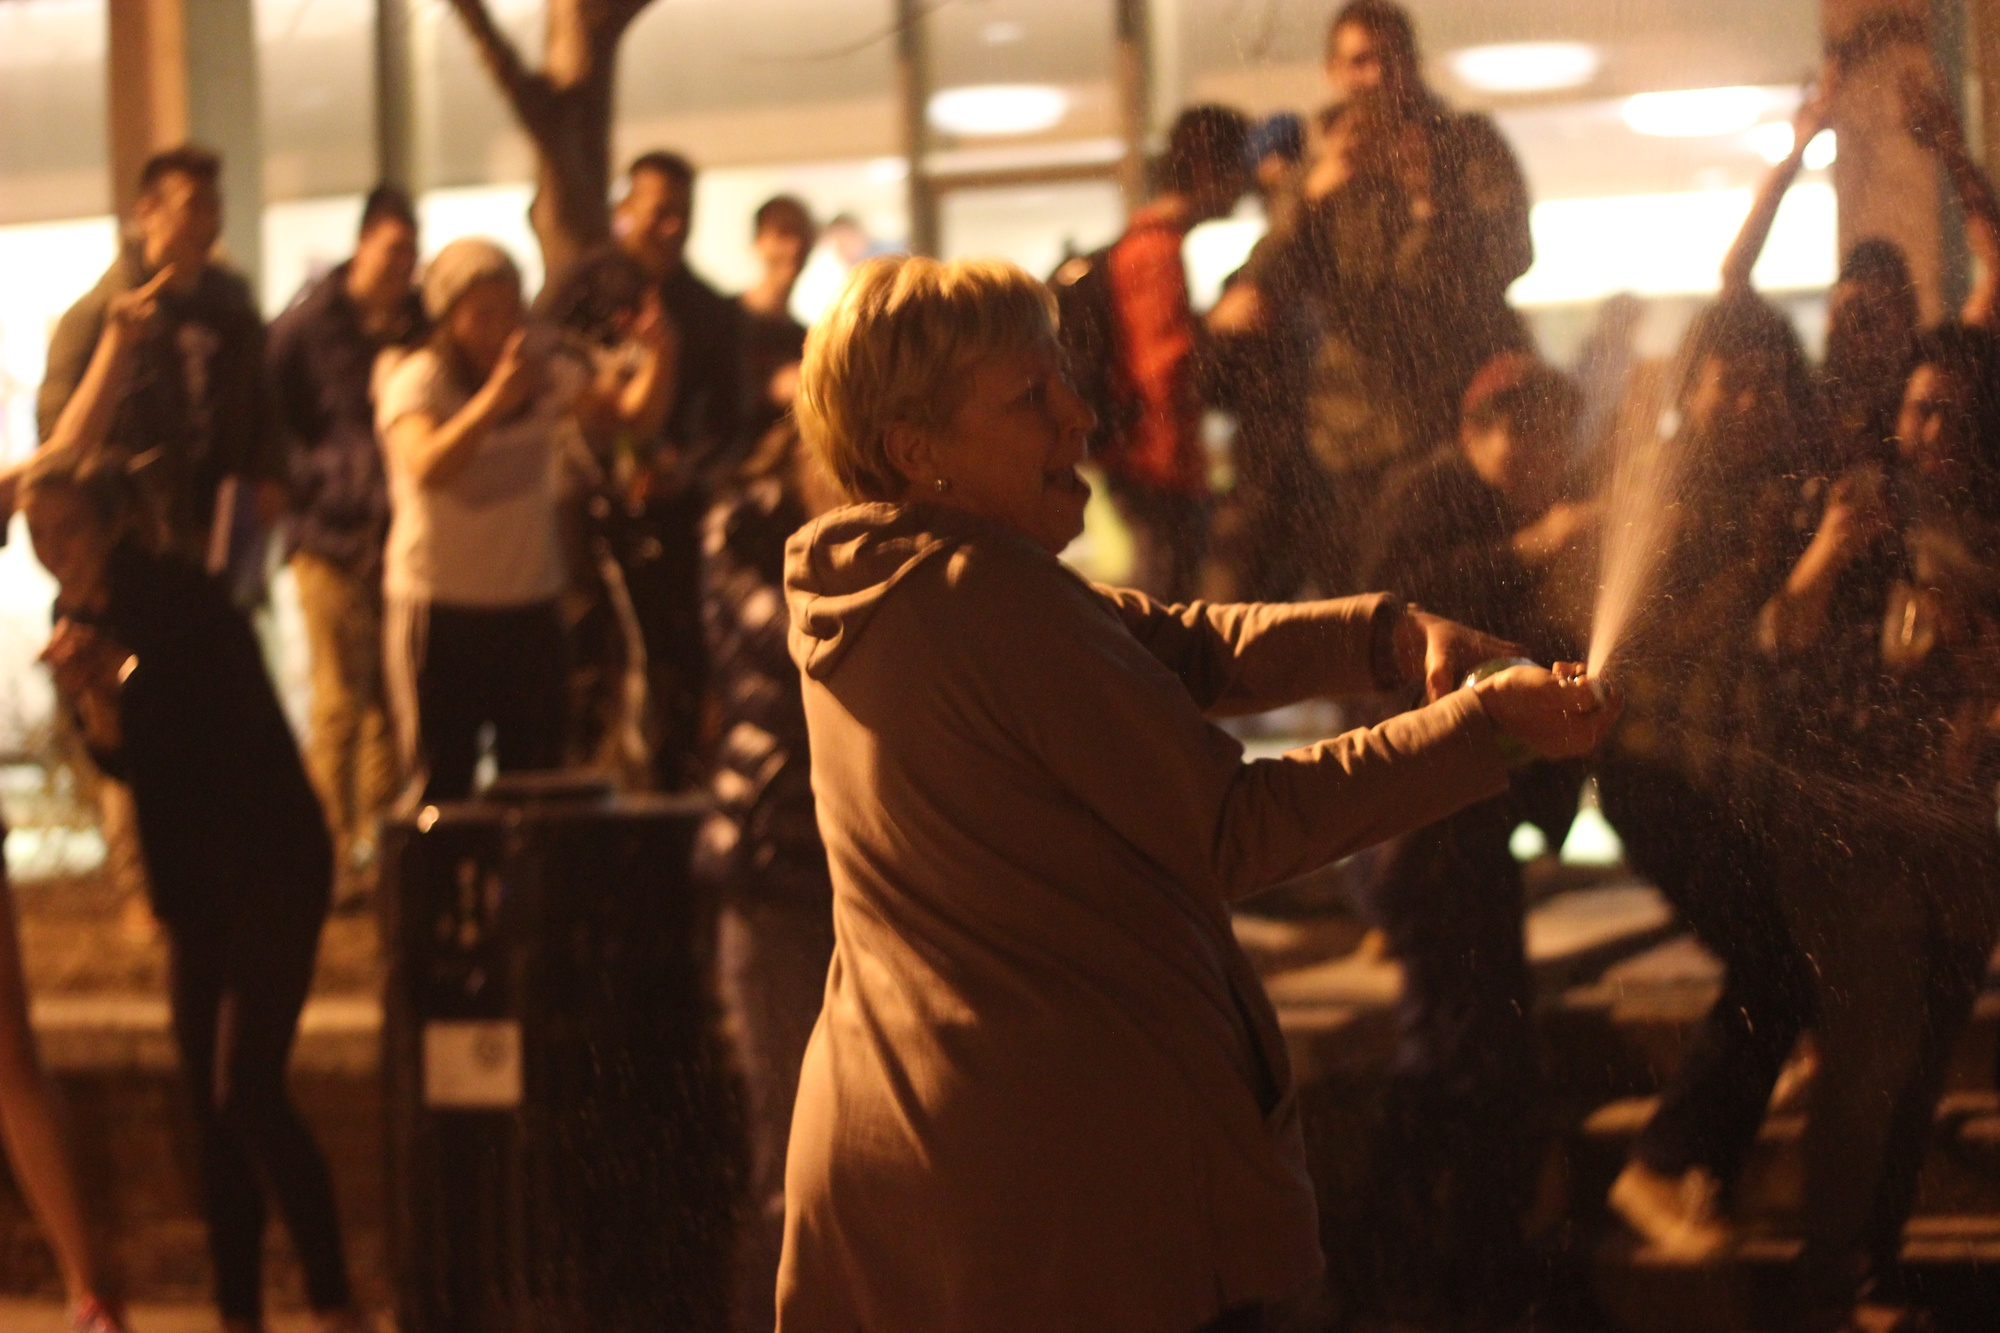 Quincy Faculty Dean Deborah J. Gehrke sprays champagne on students in the Quincy Courtyard on Sunday night in celebration of the New England Patriot's Super Bowl LI overtime upset.